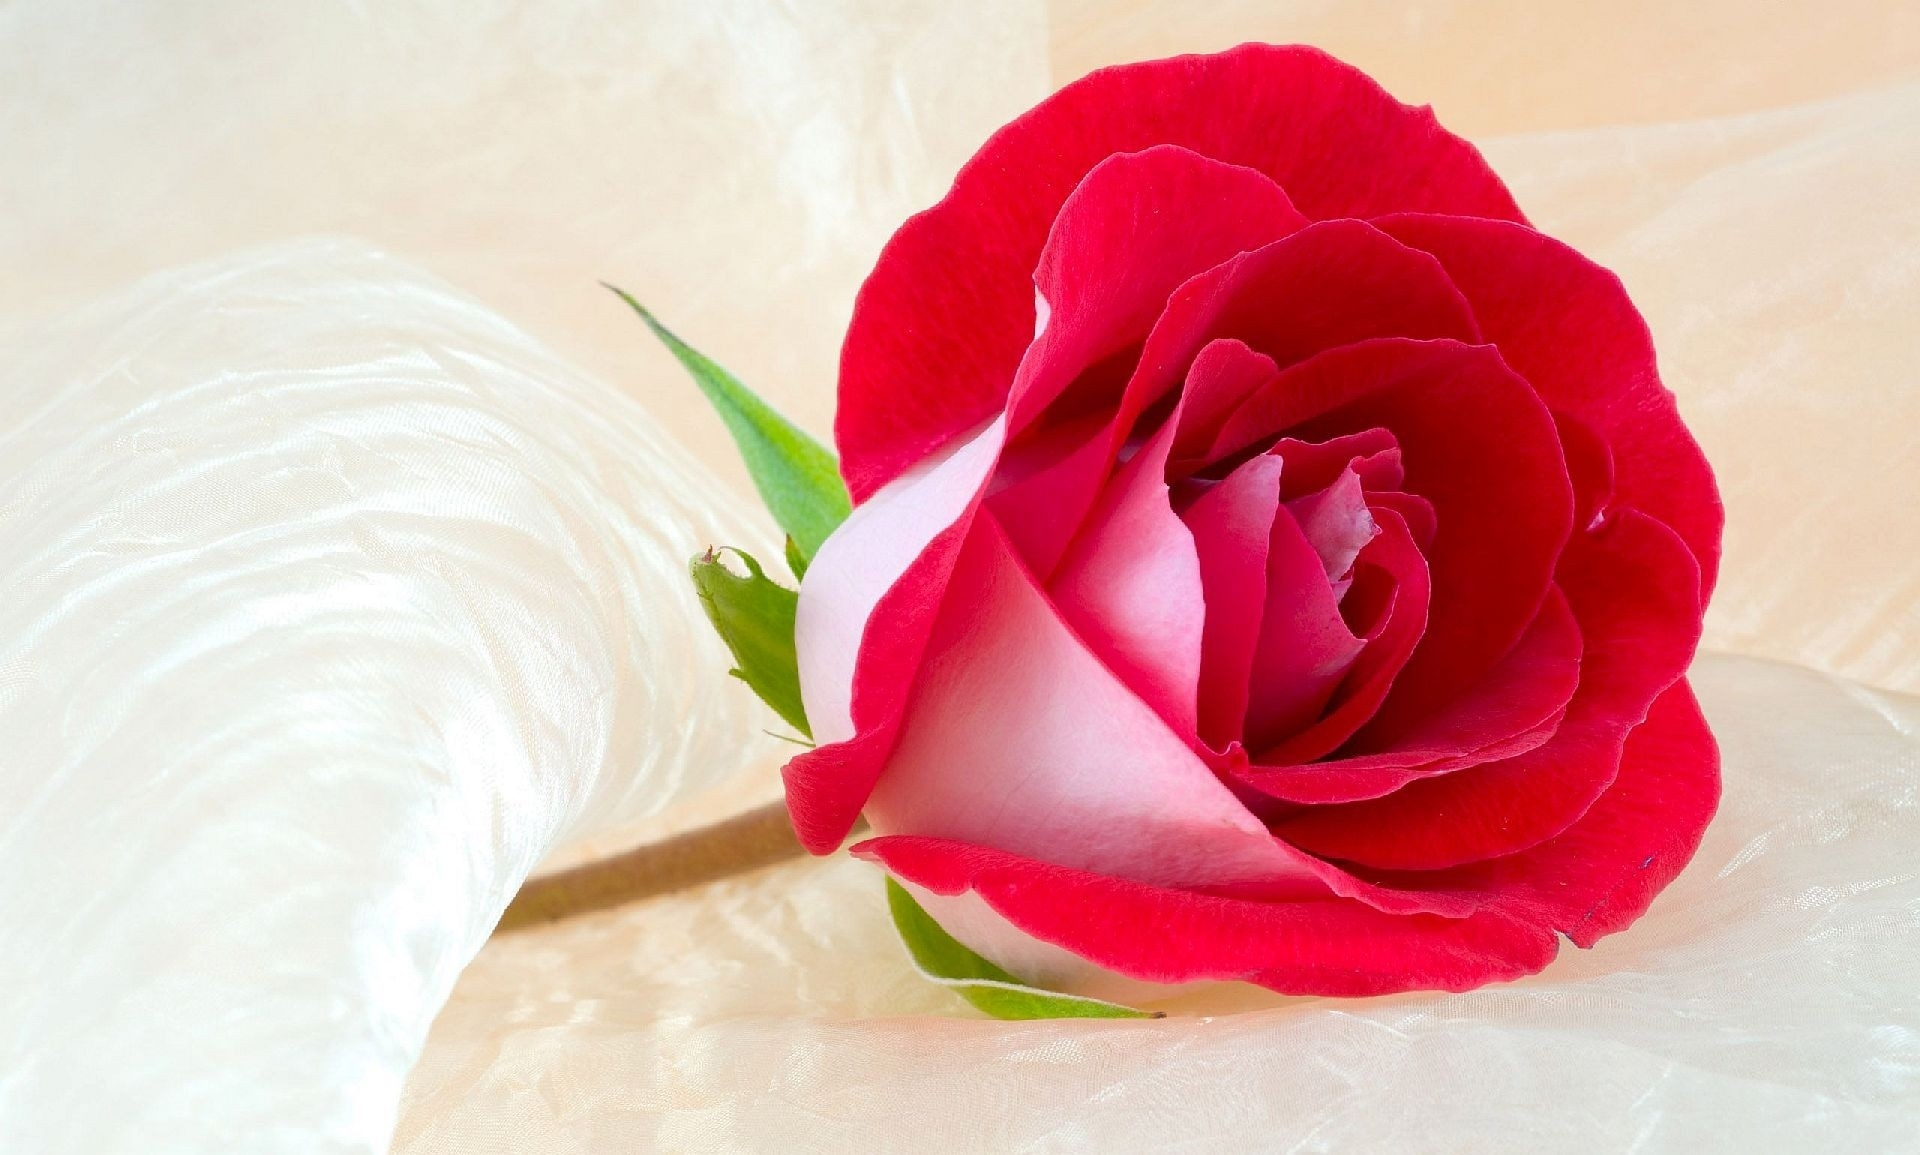 flowers: red rose beautiful wallpaper flower hd free download for hd